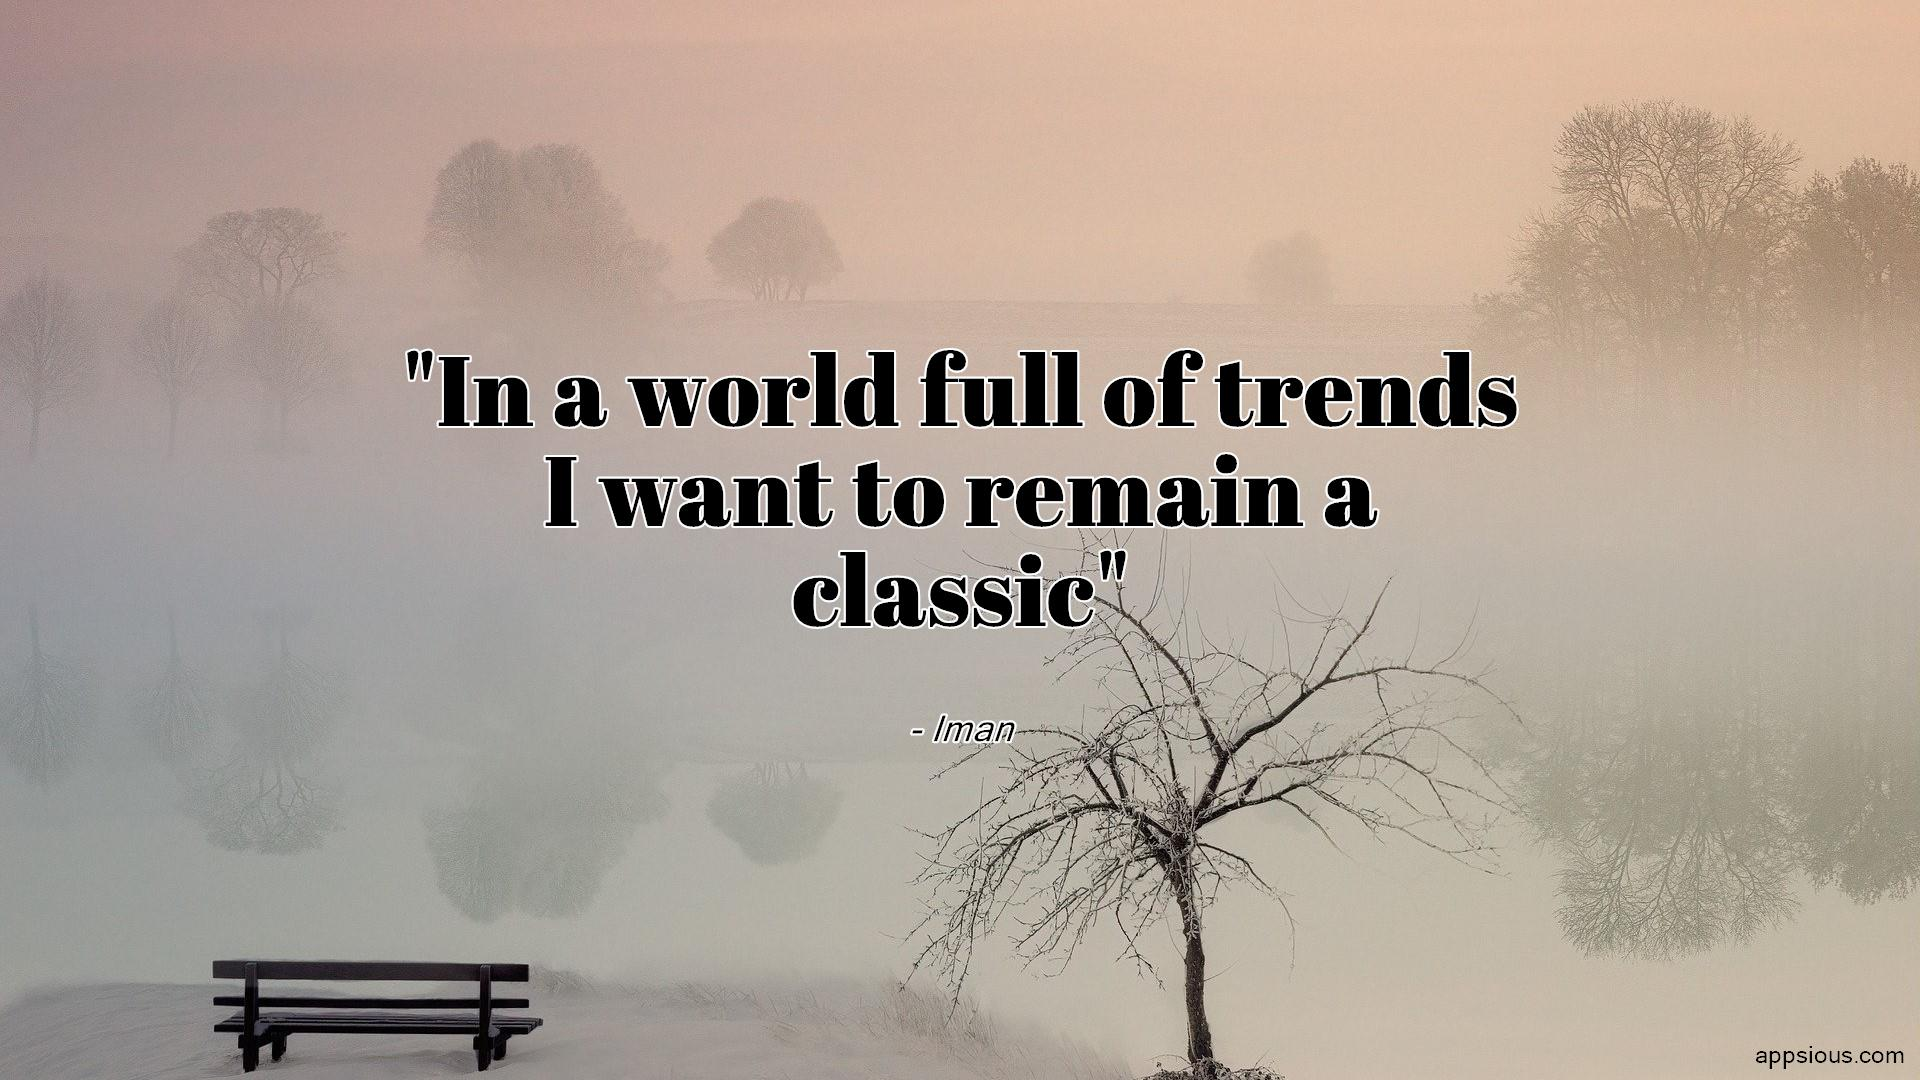 In a world full of trends I want to remain a classic